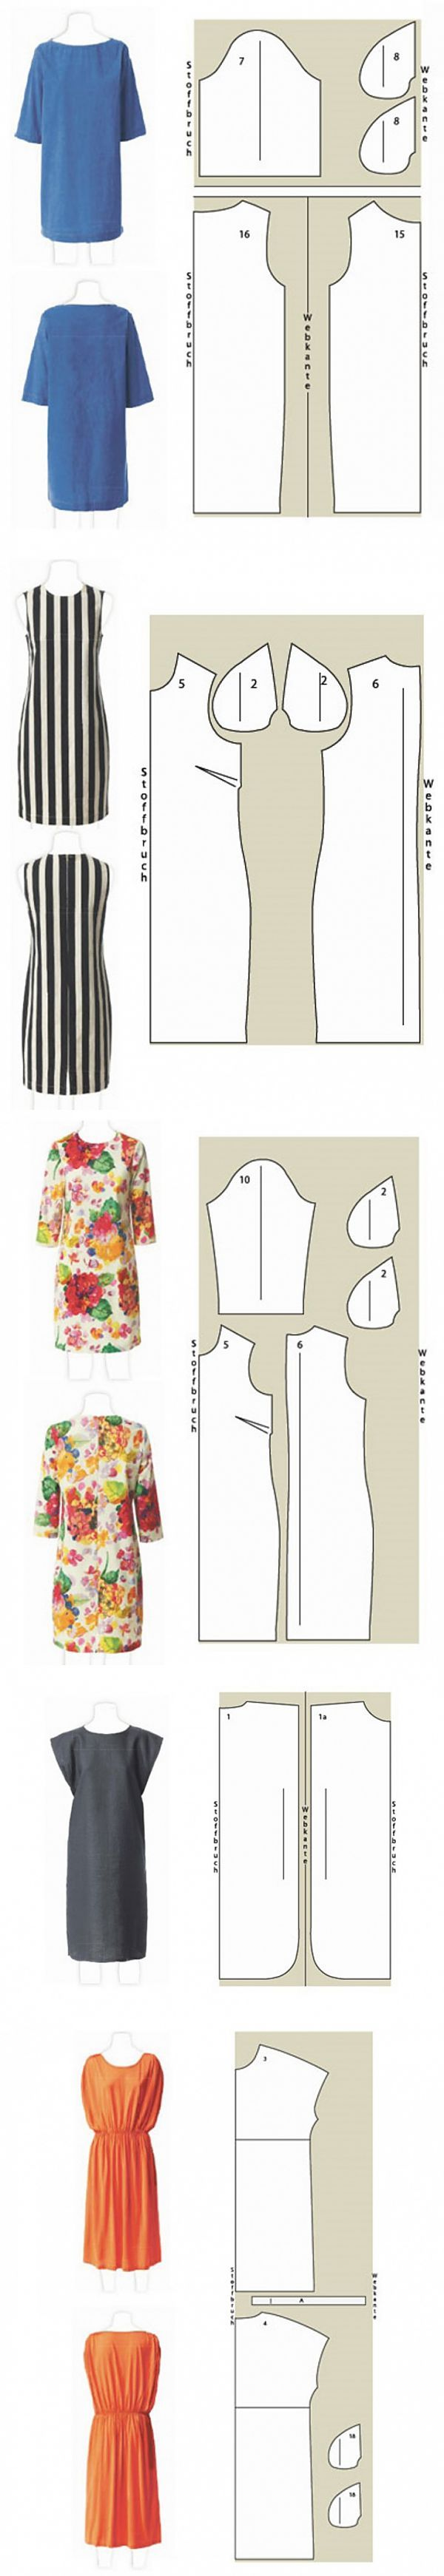 714 best patrones images on Pinterest | Pattern cutting, Sewing ...